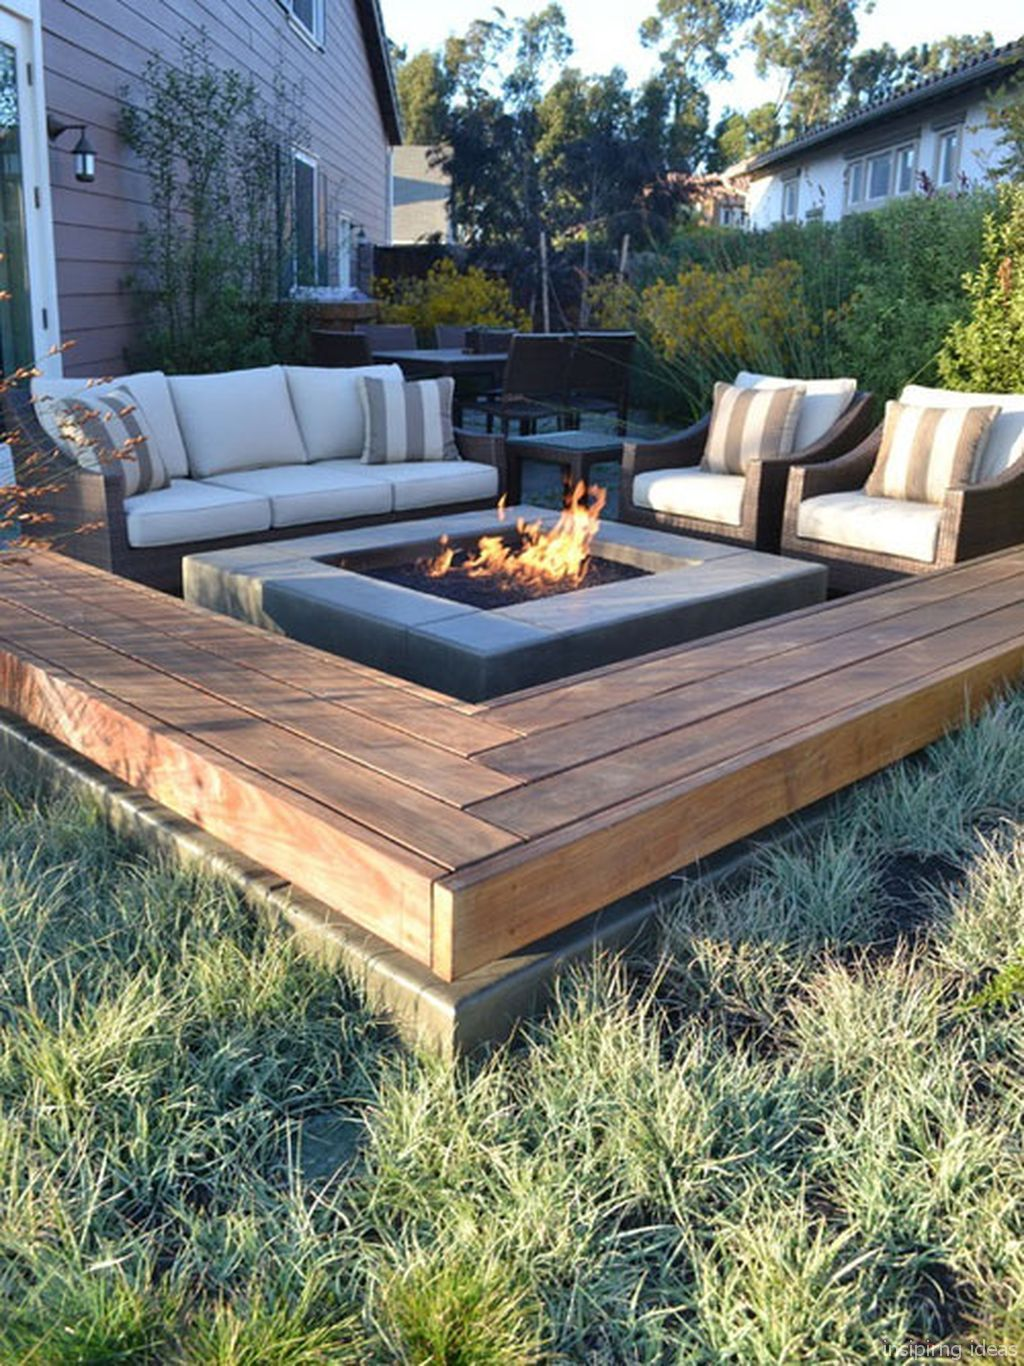 Awesome Backyard Fire Pits With Seating Ideas 28 Backyard Patio